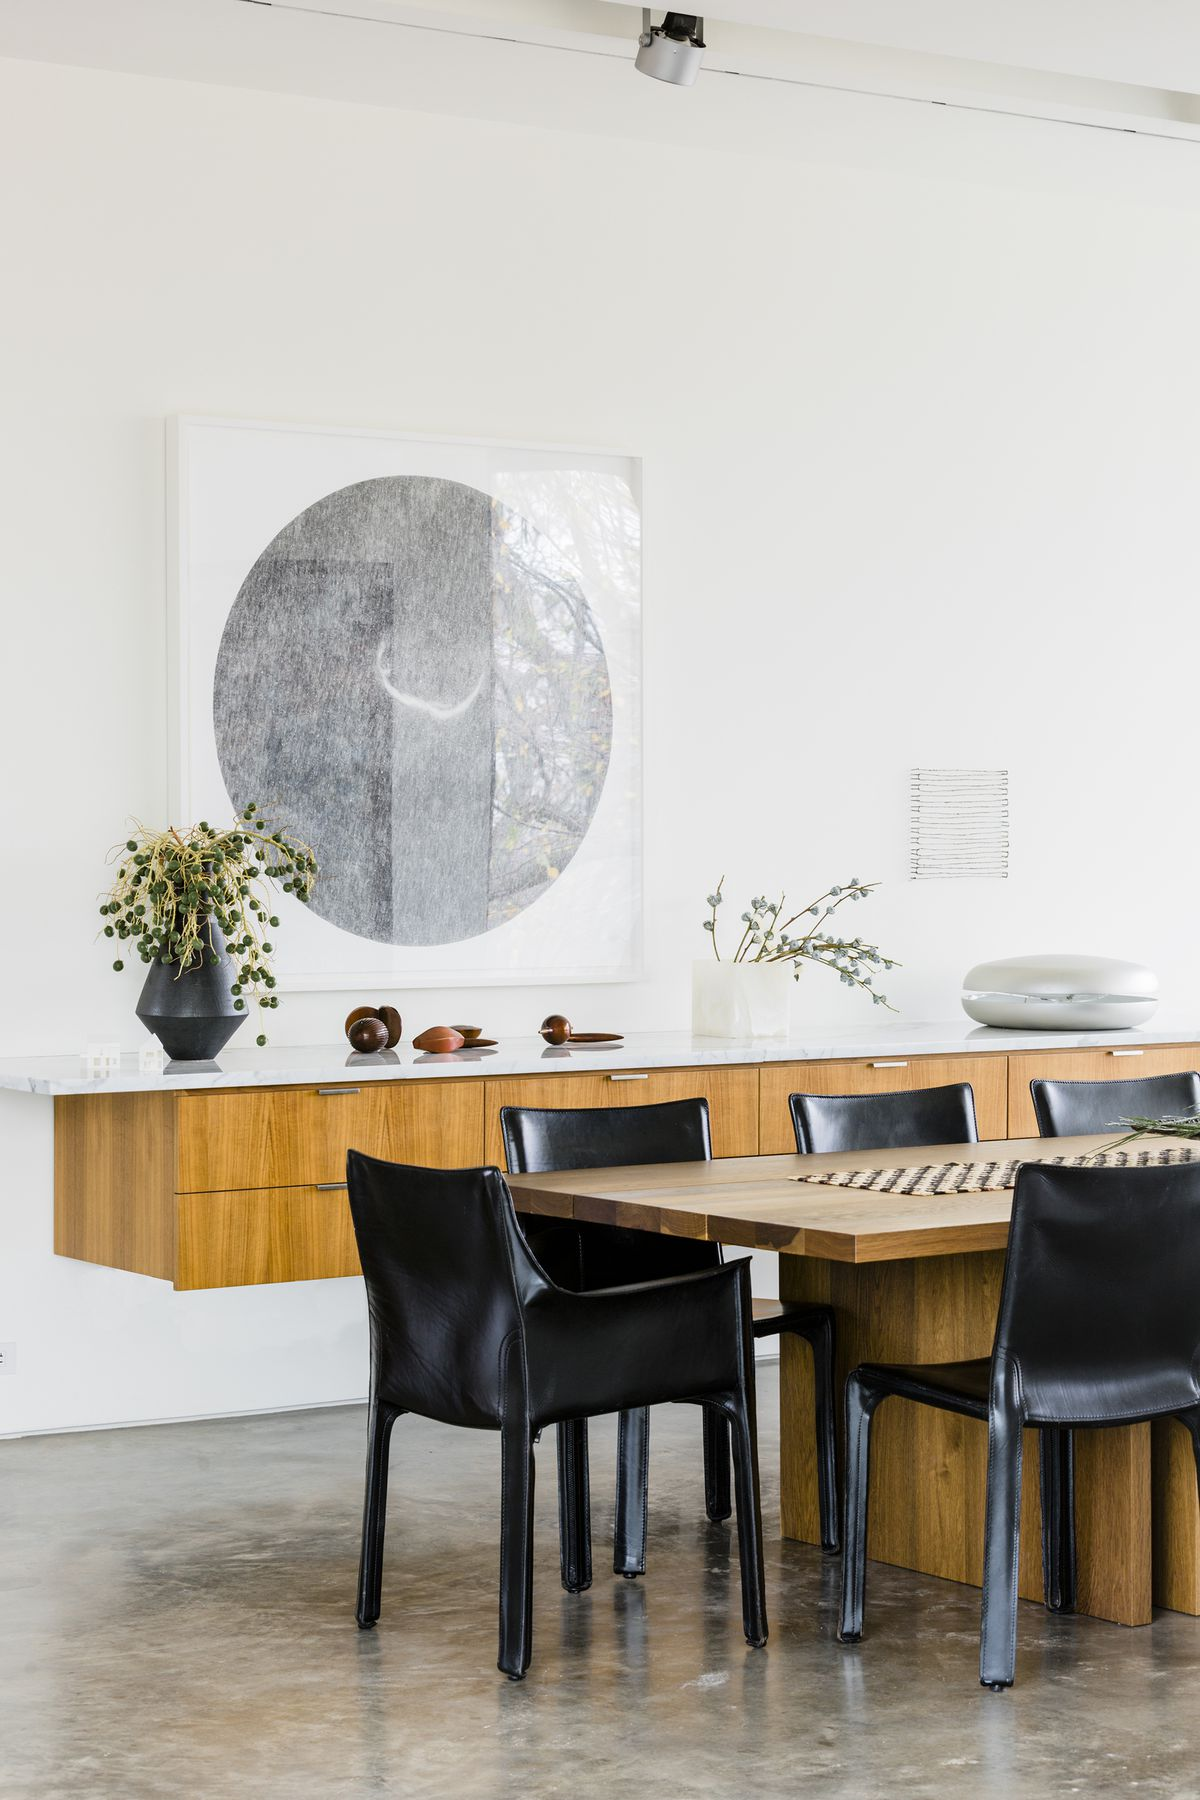 The dining room has a wood dining room table surrounded by black leather chairs. A piece of art (showing what looks like a moon) hangs above a wall-hung console.